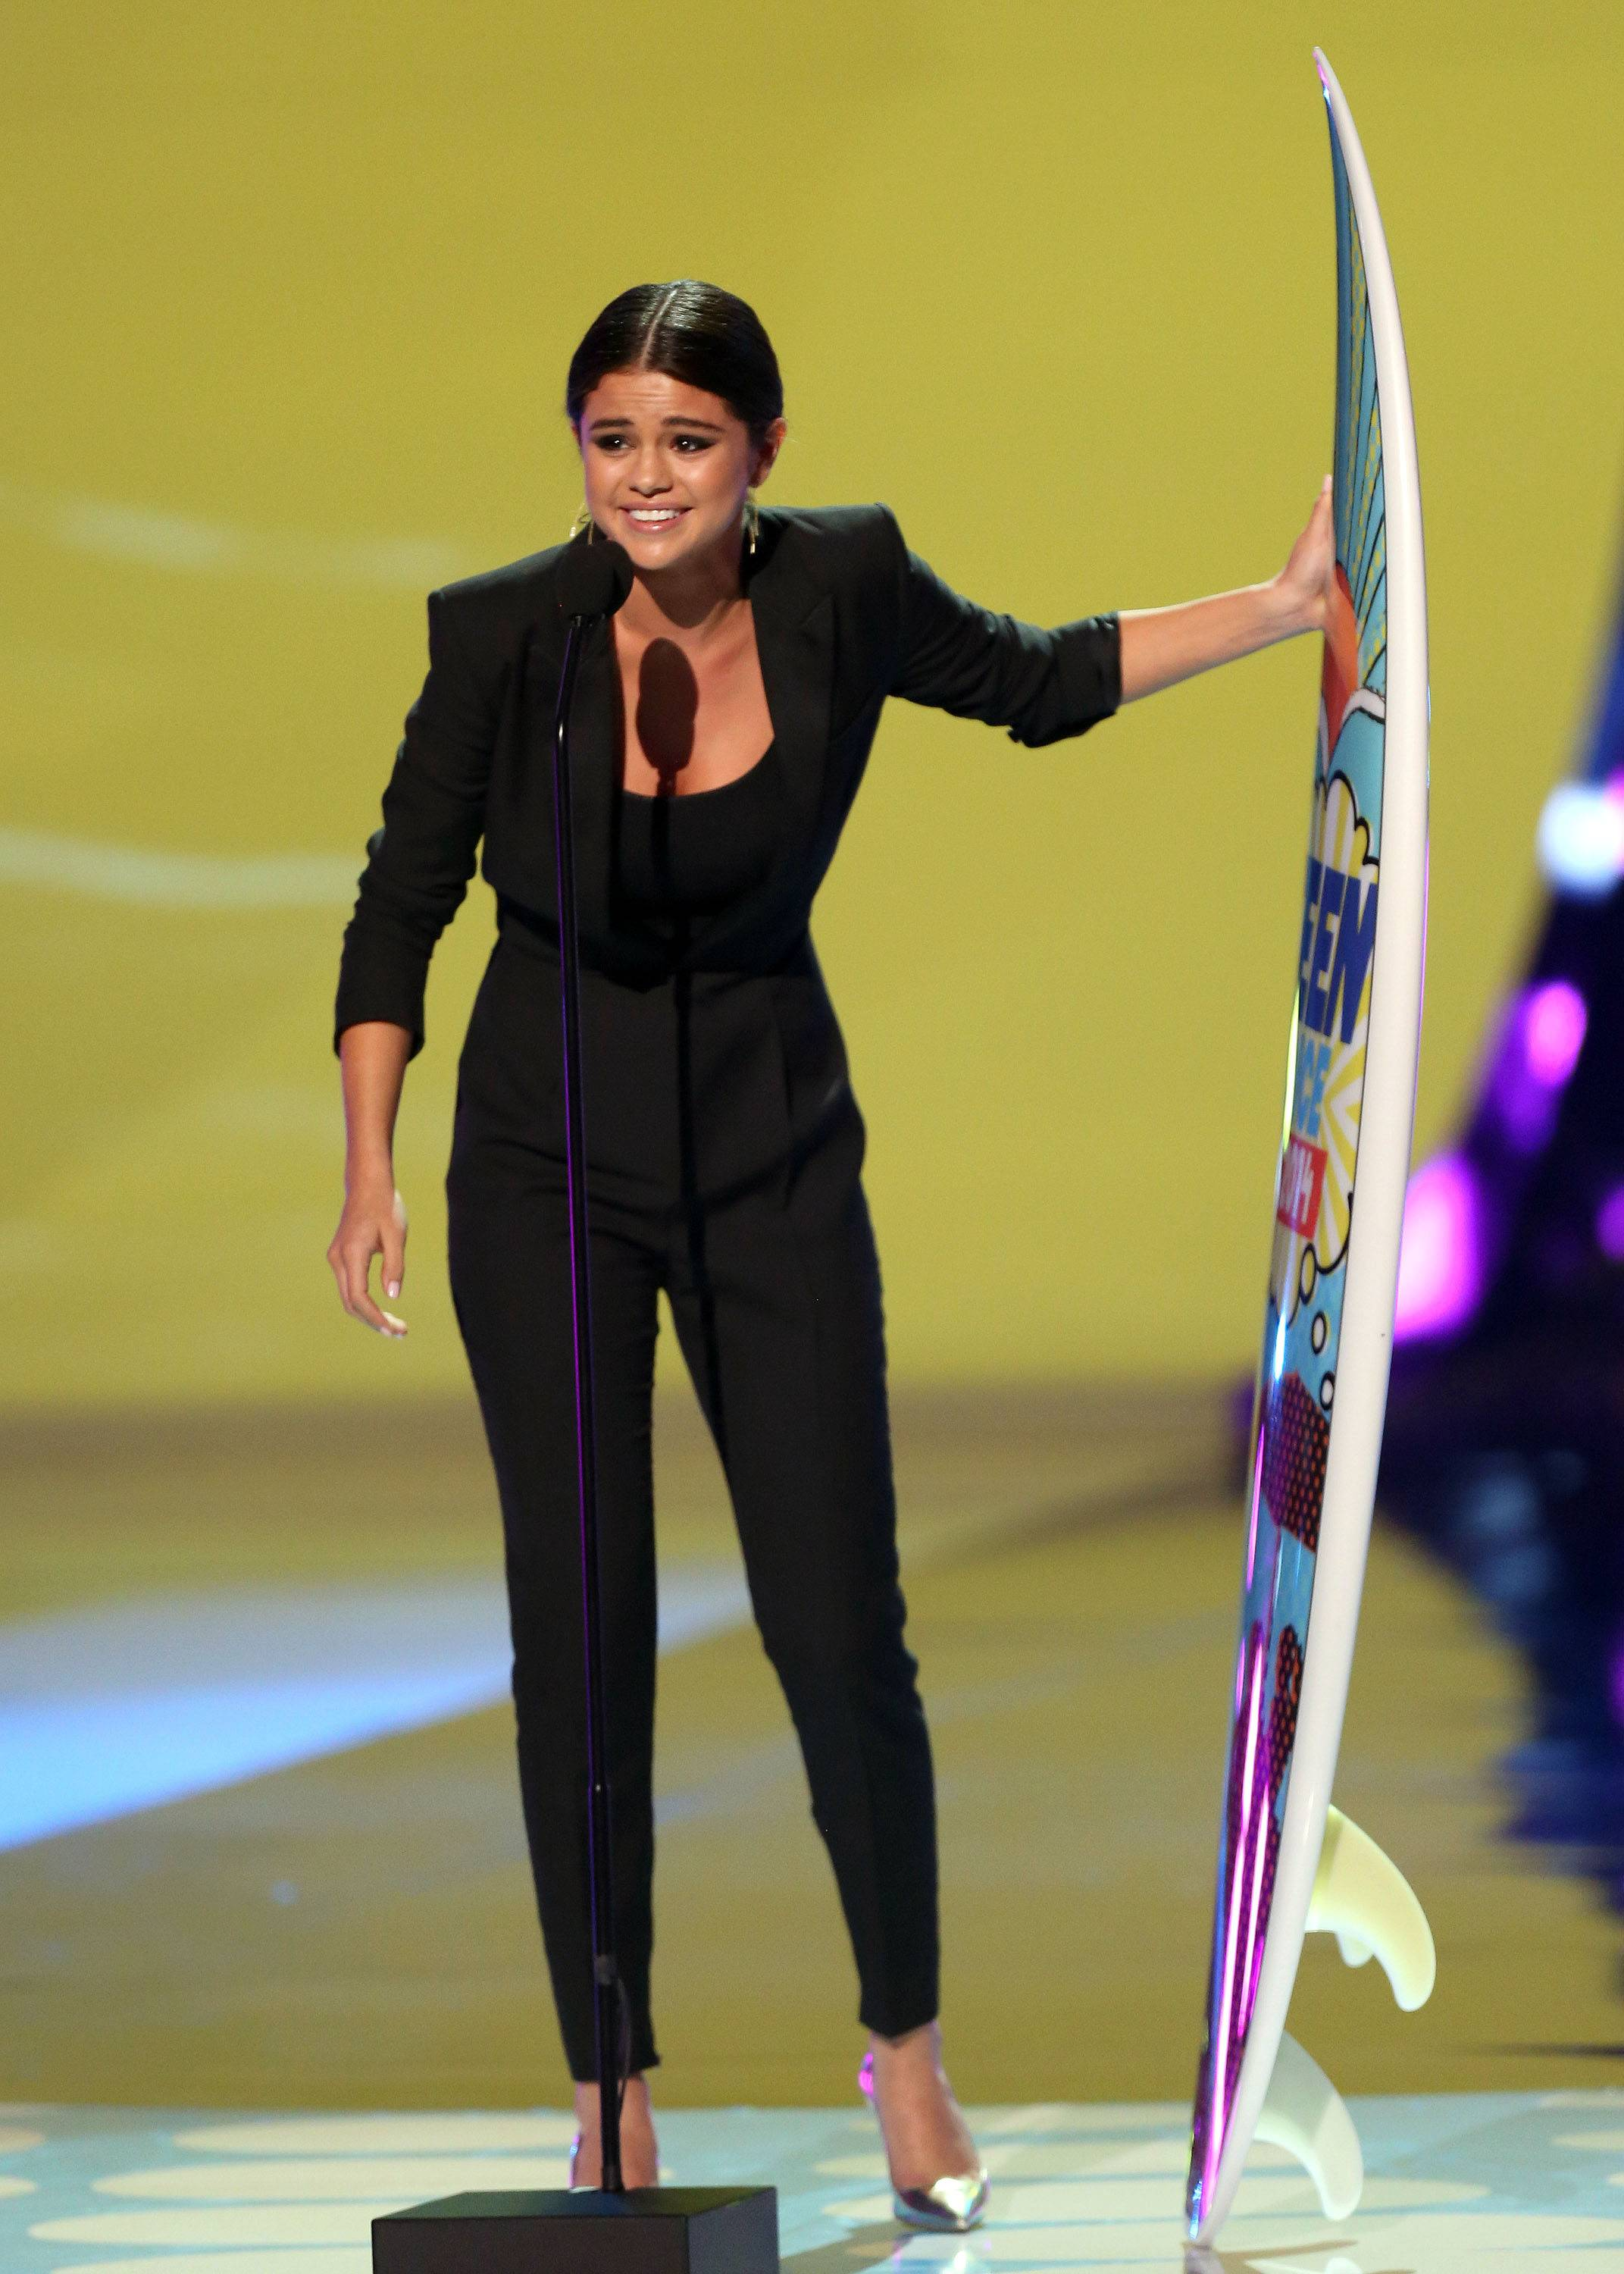 Selena Gomez accepts the award for ultimate choice at the Teen Choice Awards at the Shrine Auditorium on Sunday in Los Angeles.